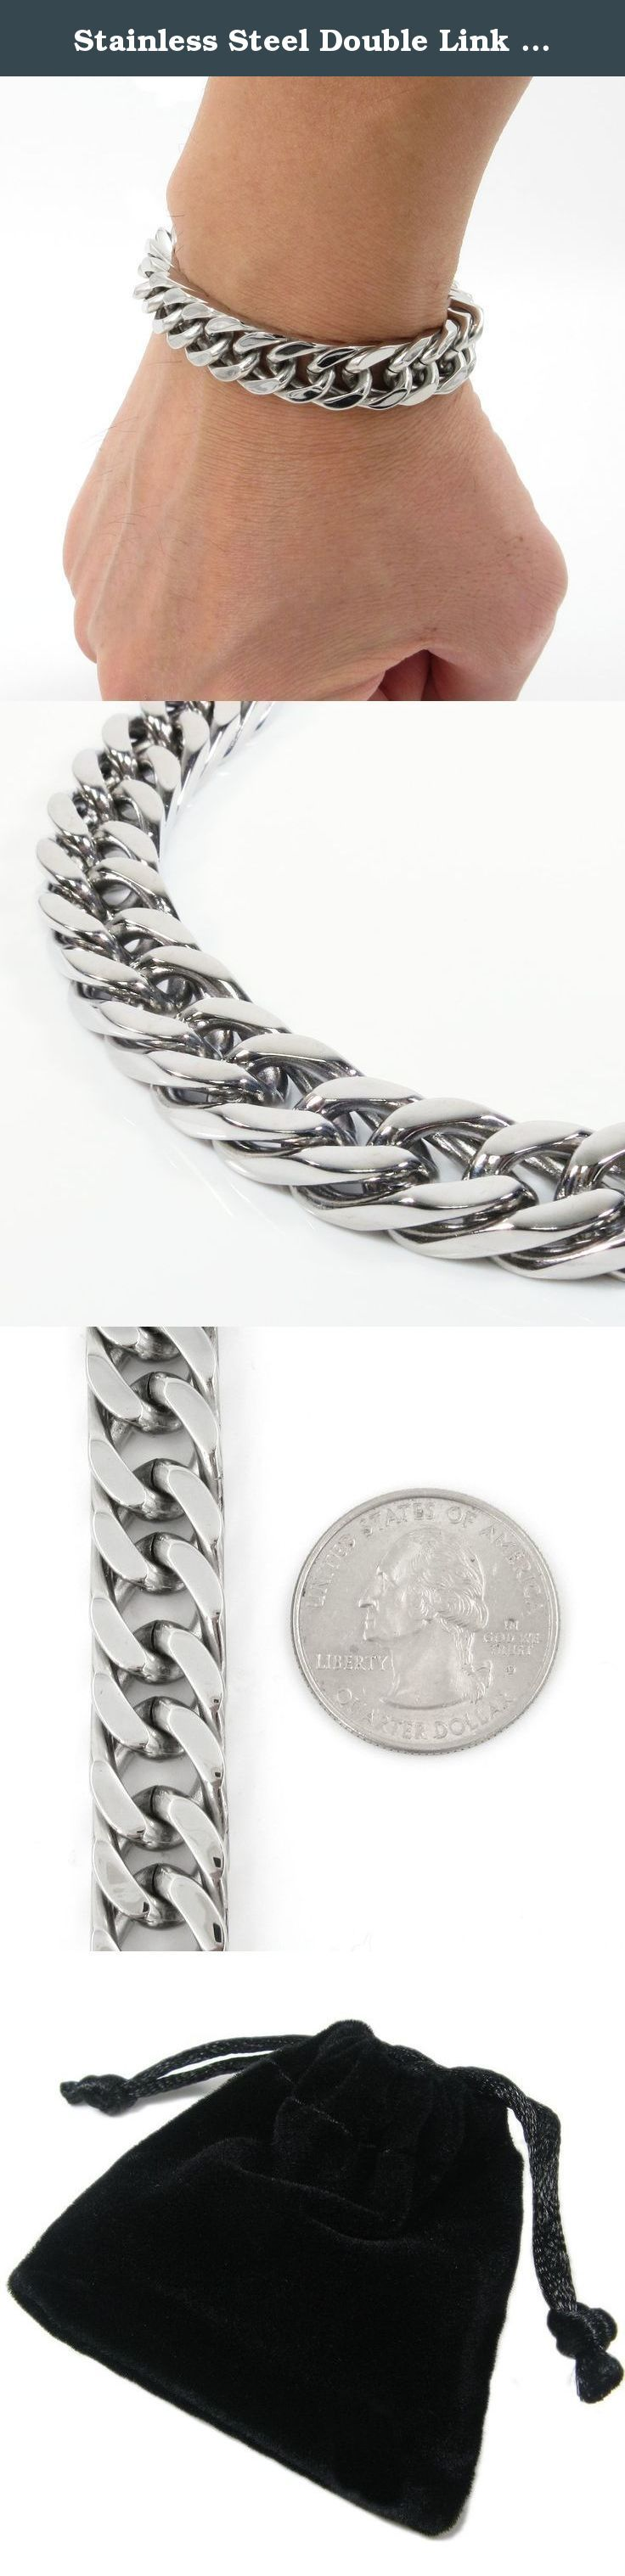 Stainless Steel Double Link Cuban Chain Mens Bracelet 12mm 8inch. One stainless steel men bracelet. Masculine polish double link curb cuban chain design. Lobster clasp. 12mm wide, fit 8 inch wrist. Comes with a gift bag. ** The coin in the picture is a US quarter dollar for size reference only and not included.